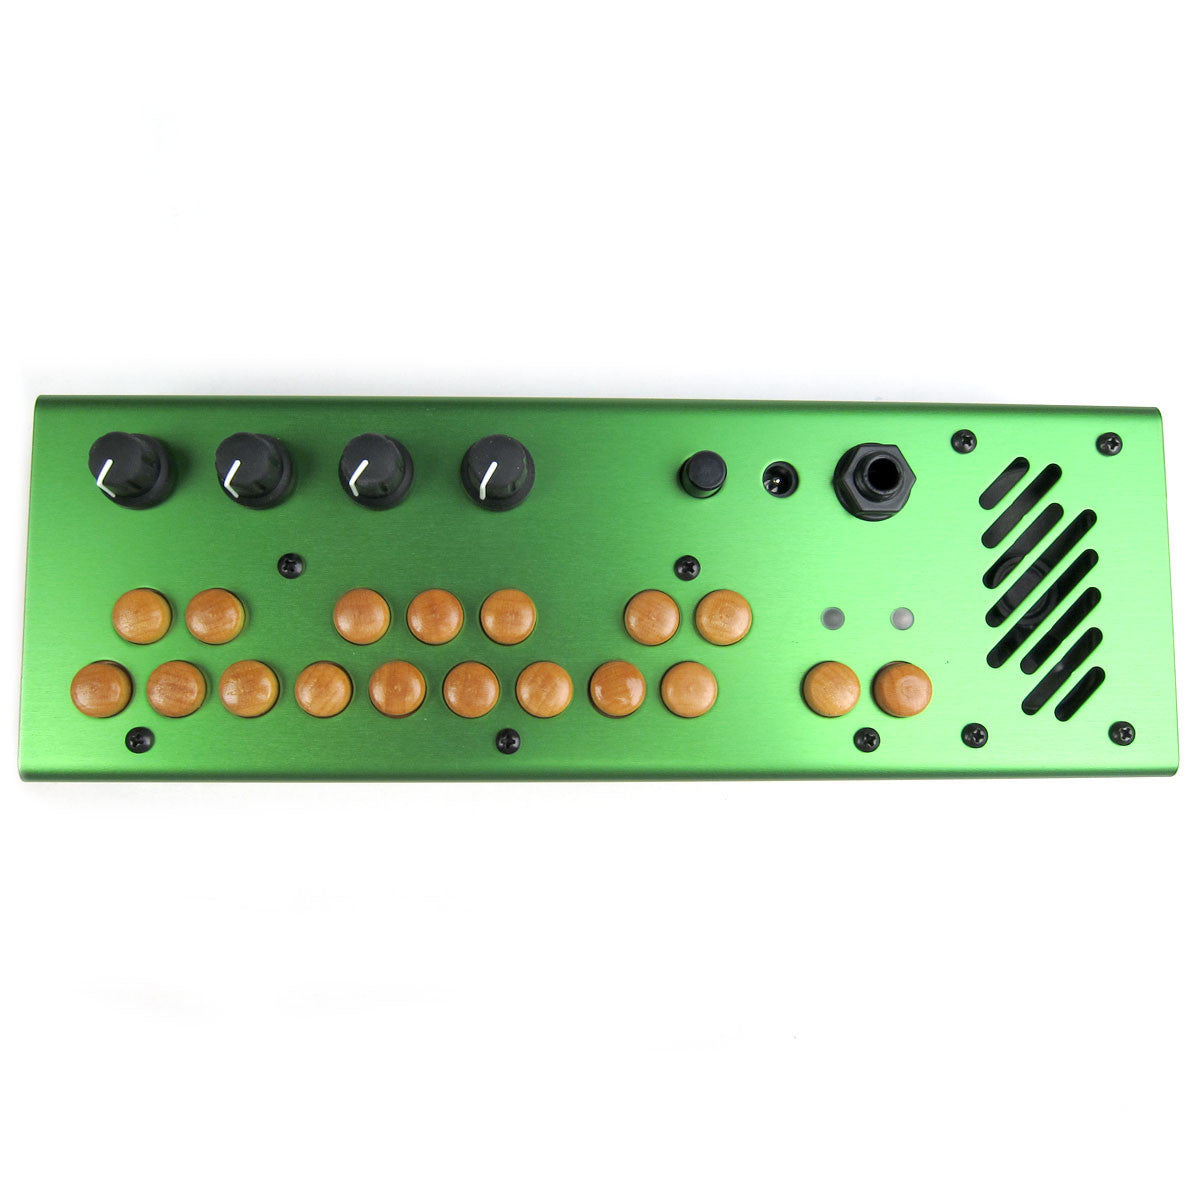 Critter & Guitari: Critter & Guitari: Pocket Piano MIDI - Green top